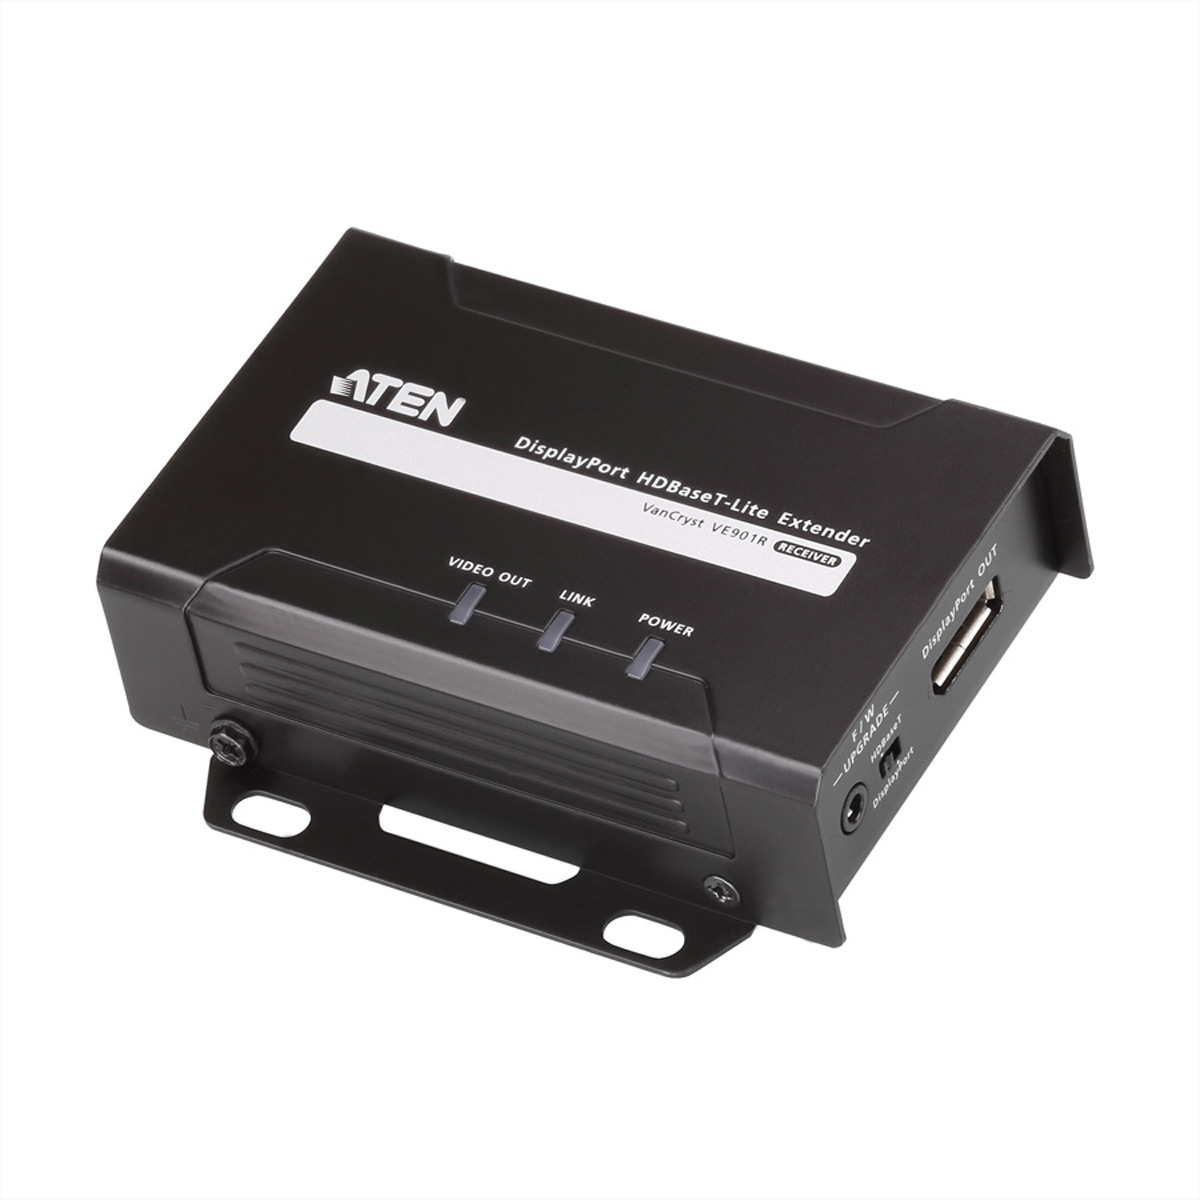 ATEN VE901R DisplayPort HDBaseT Lite Receiver